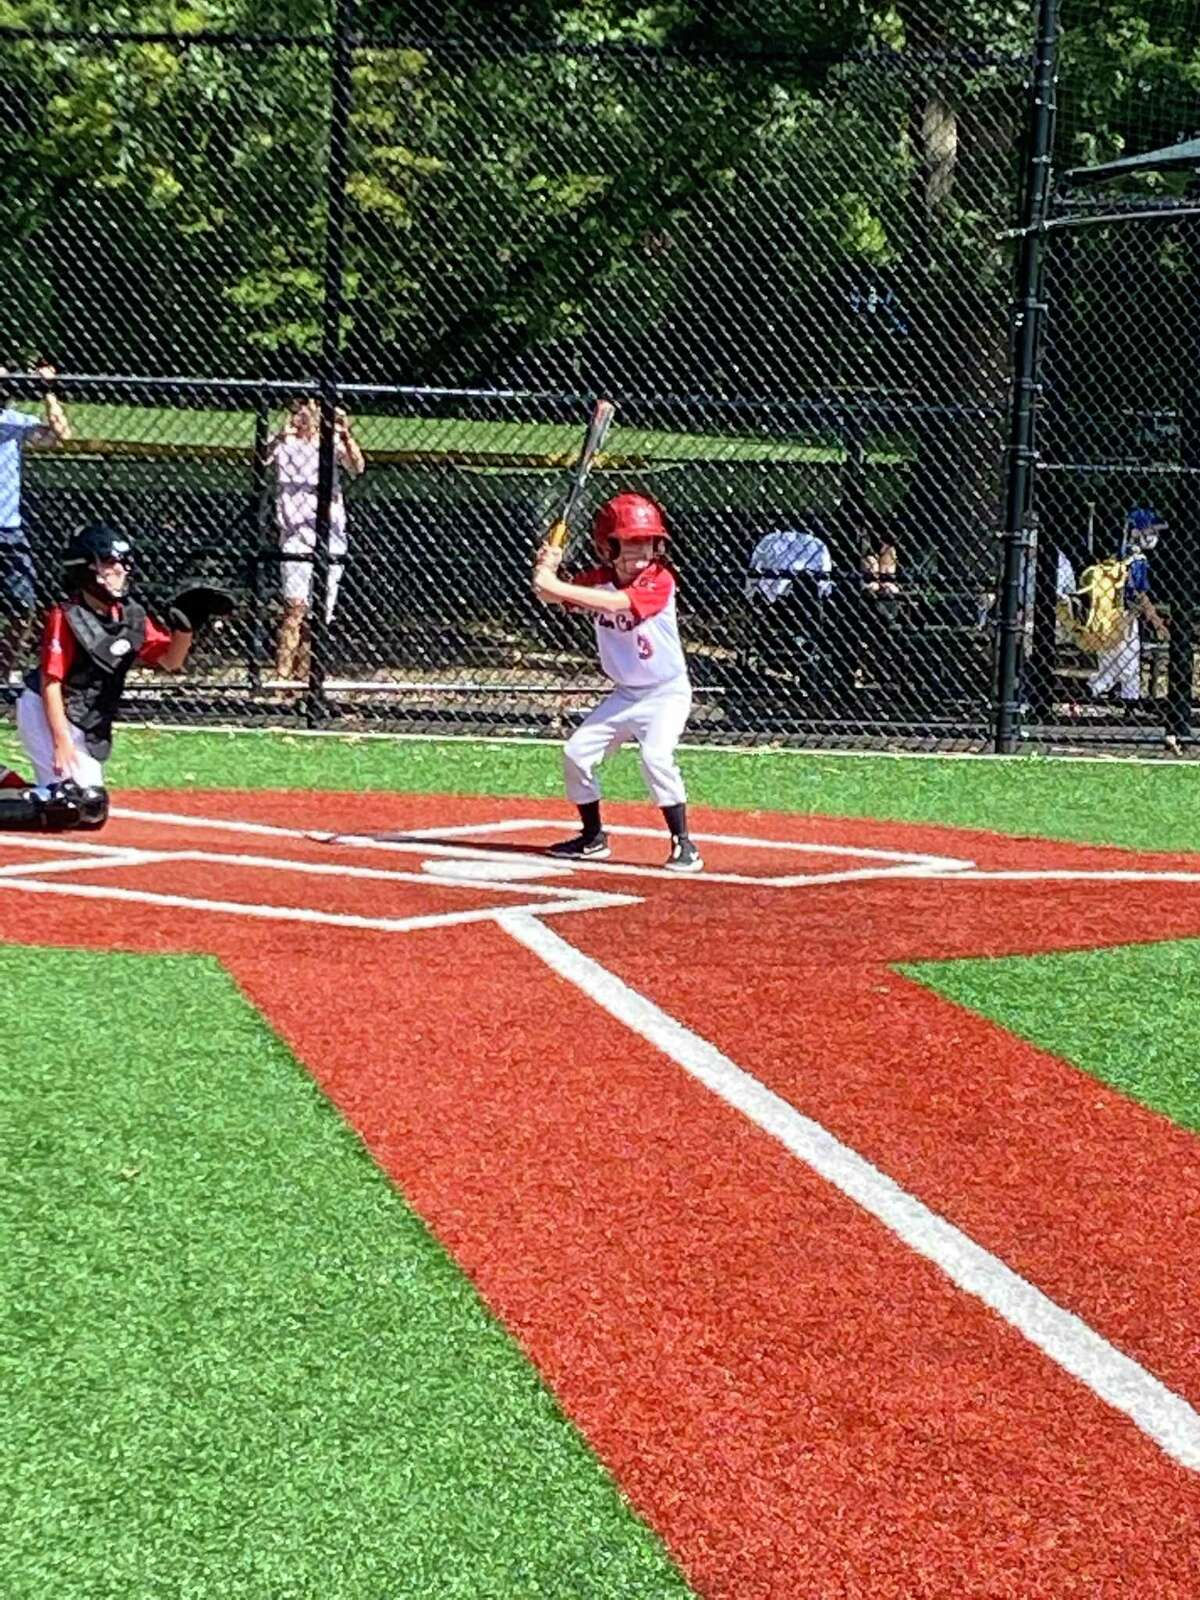 New Canaan Little League will be starting its season on April 12 and is excited to provide an opportunity for its youth to get back into the swing of normalcy.